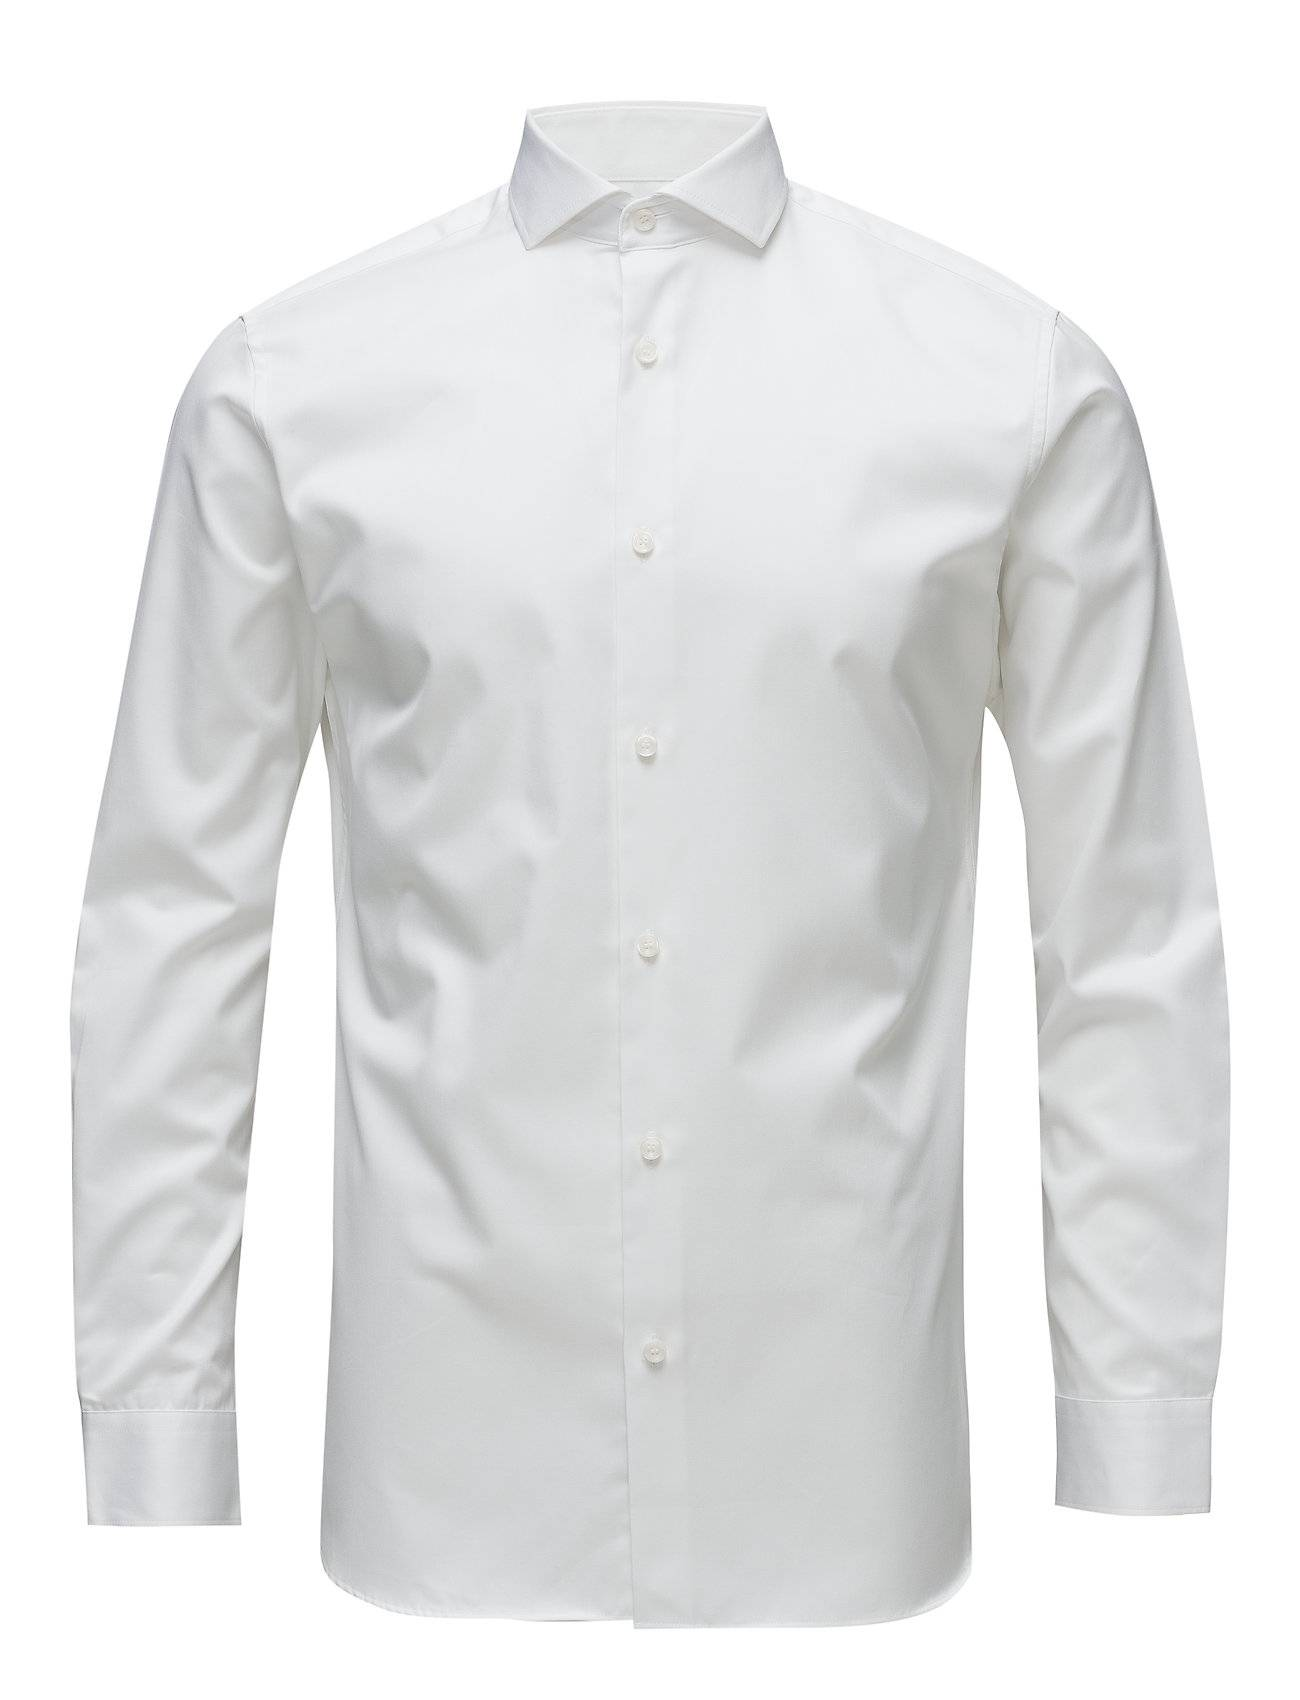 Selected Homme Slhslimsel-Pelle Shirt Ls B Noos Paita Bisnes Valkoinen Selected Homme